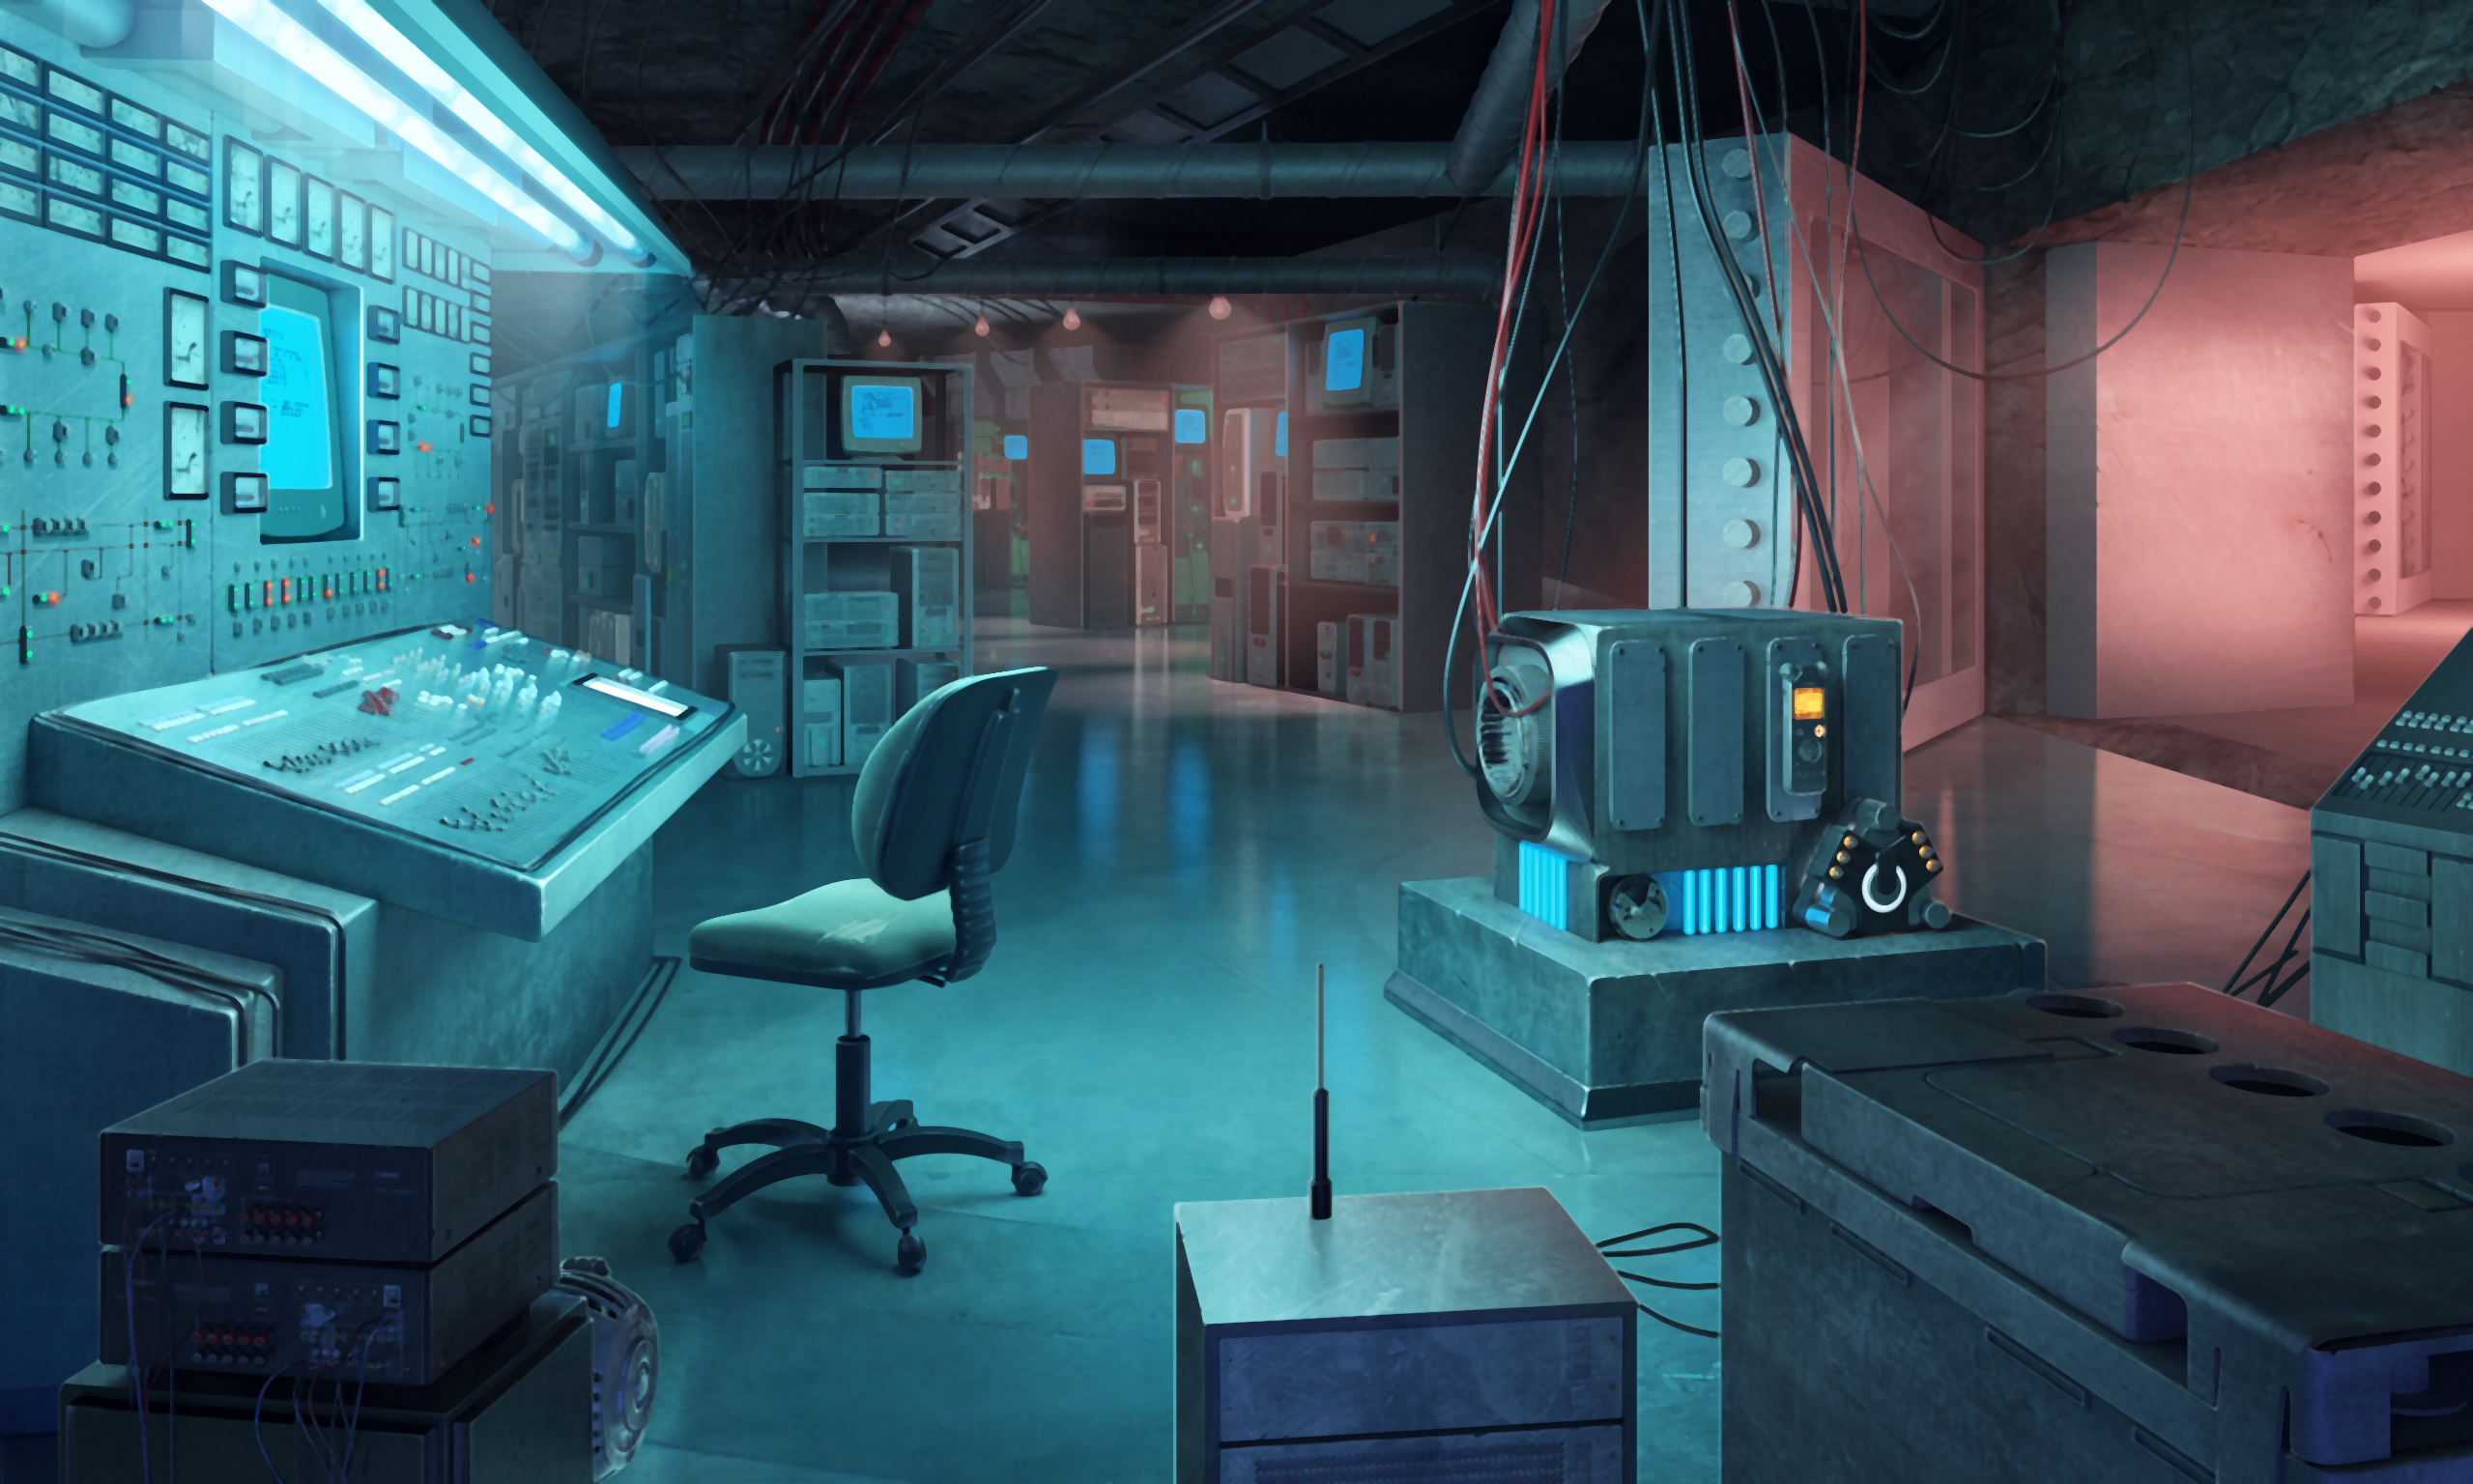 Bunker xfiles background deepstate bunker Background Scenes 2559x1536